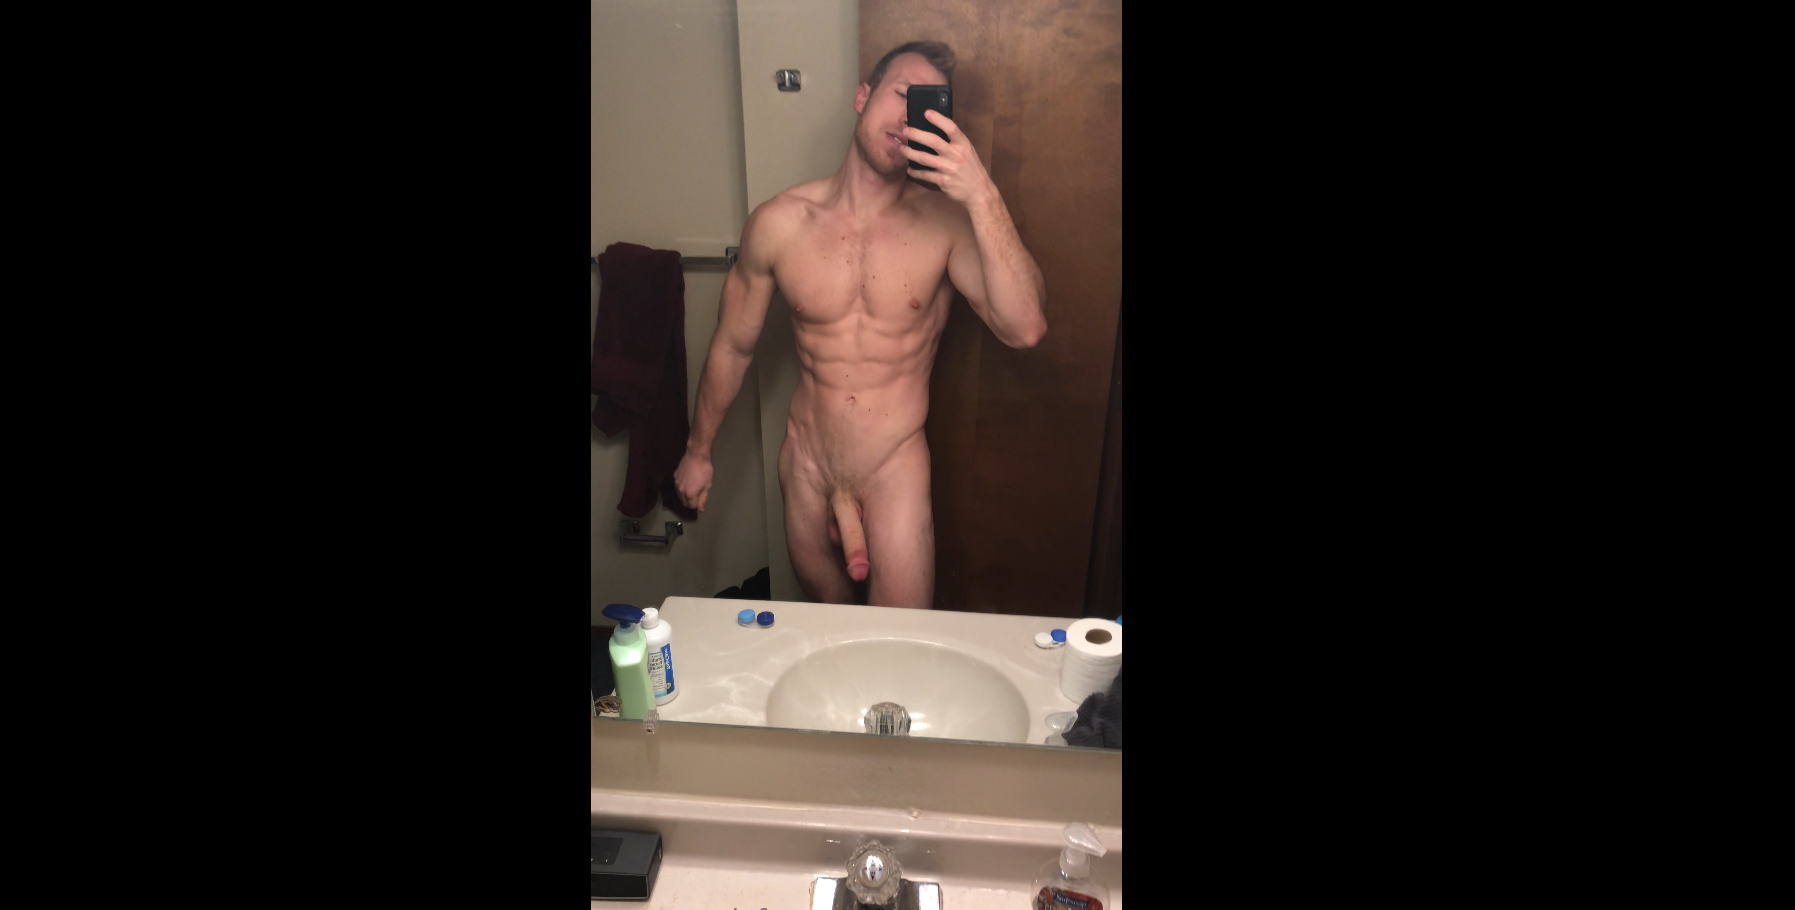 Connor Holt showing off his body and big cock - eeconnerholtee